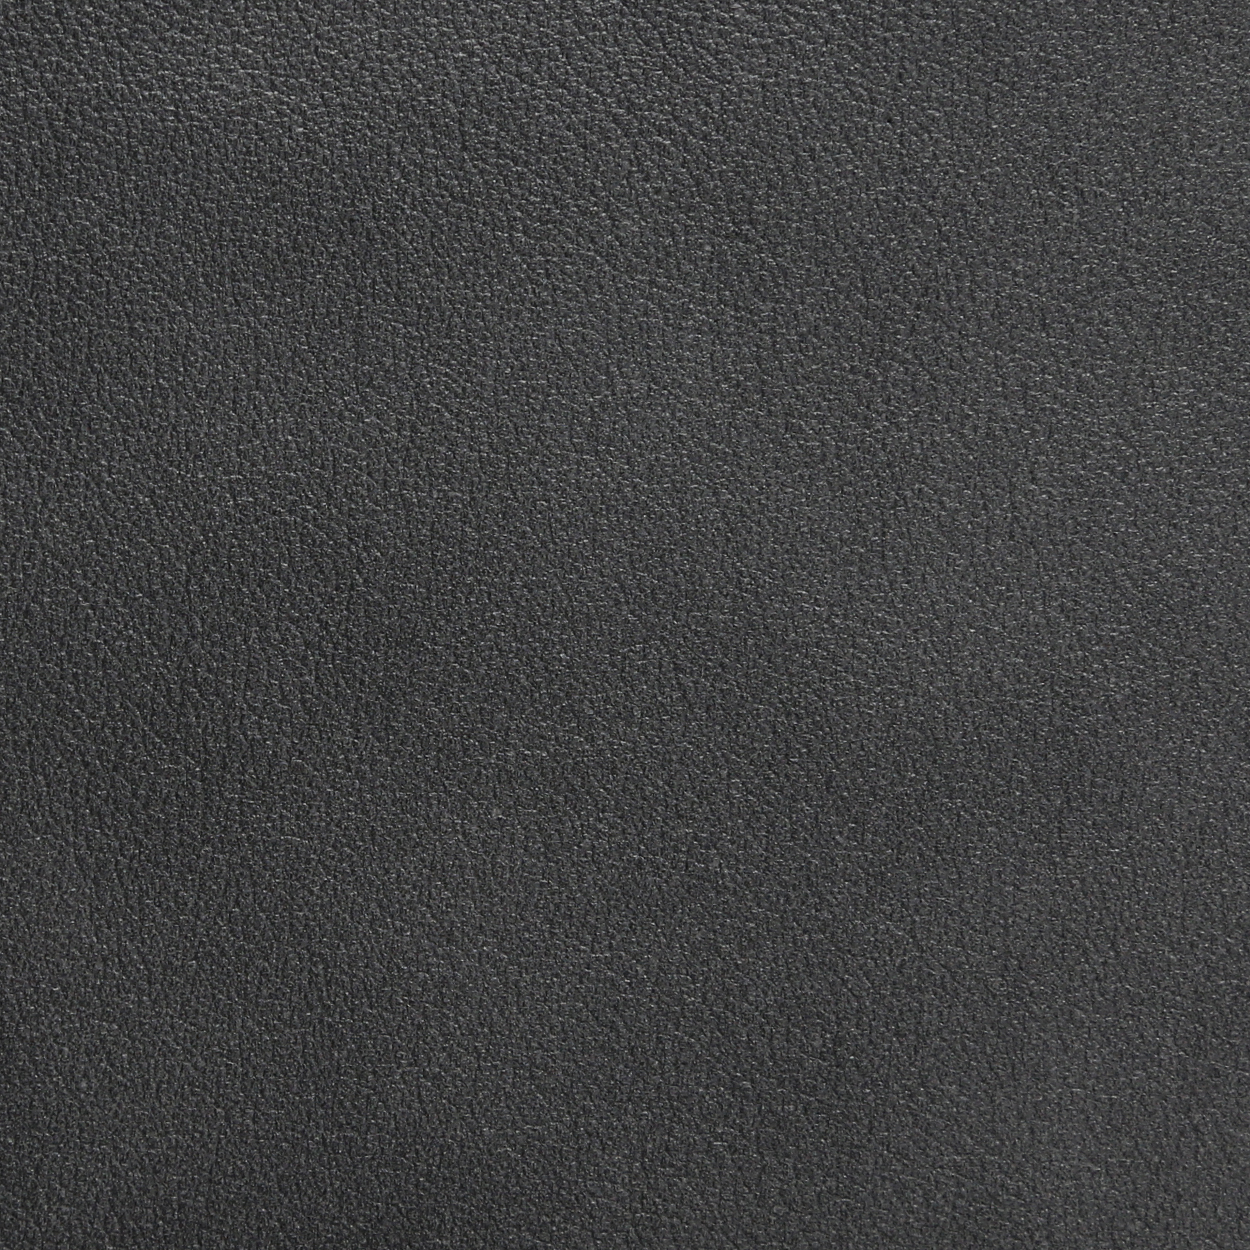 Iron - Pearlescent Leather